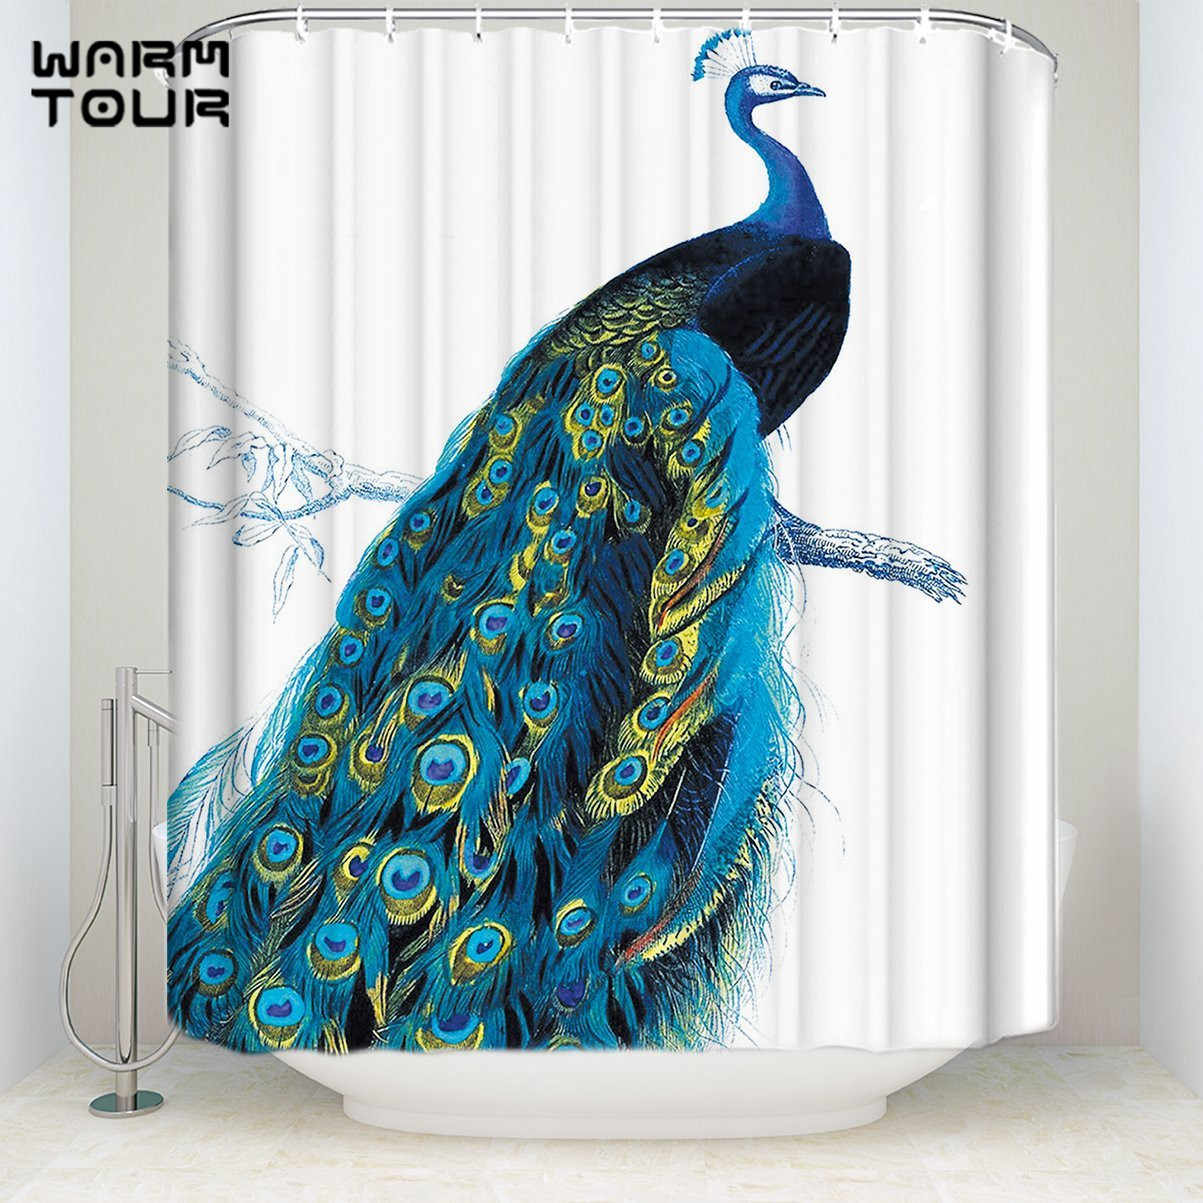 Warmtour Shower Curtain Extra Long Fabric Bath Shower Curtains Proud Peacock Welcome Mildew Resistant Bathroom Decor Sets Shower Curtains Aliexpress